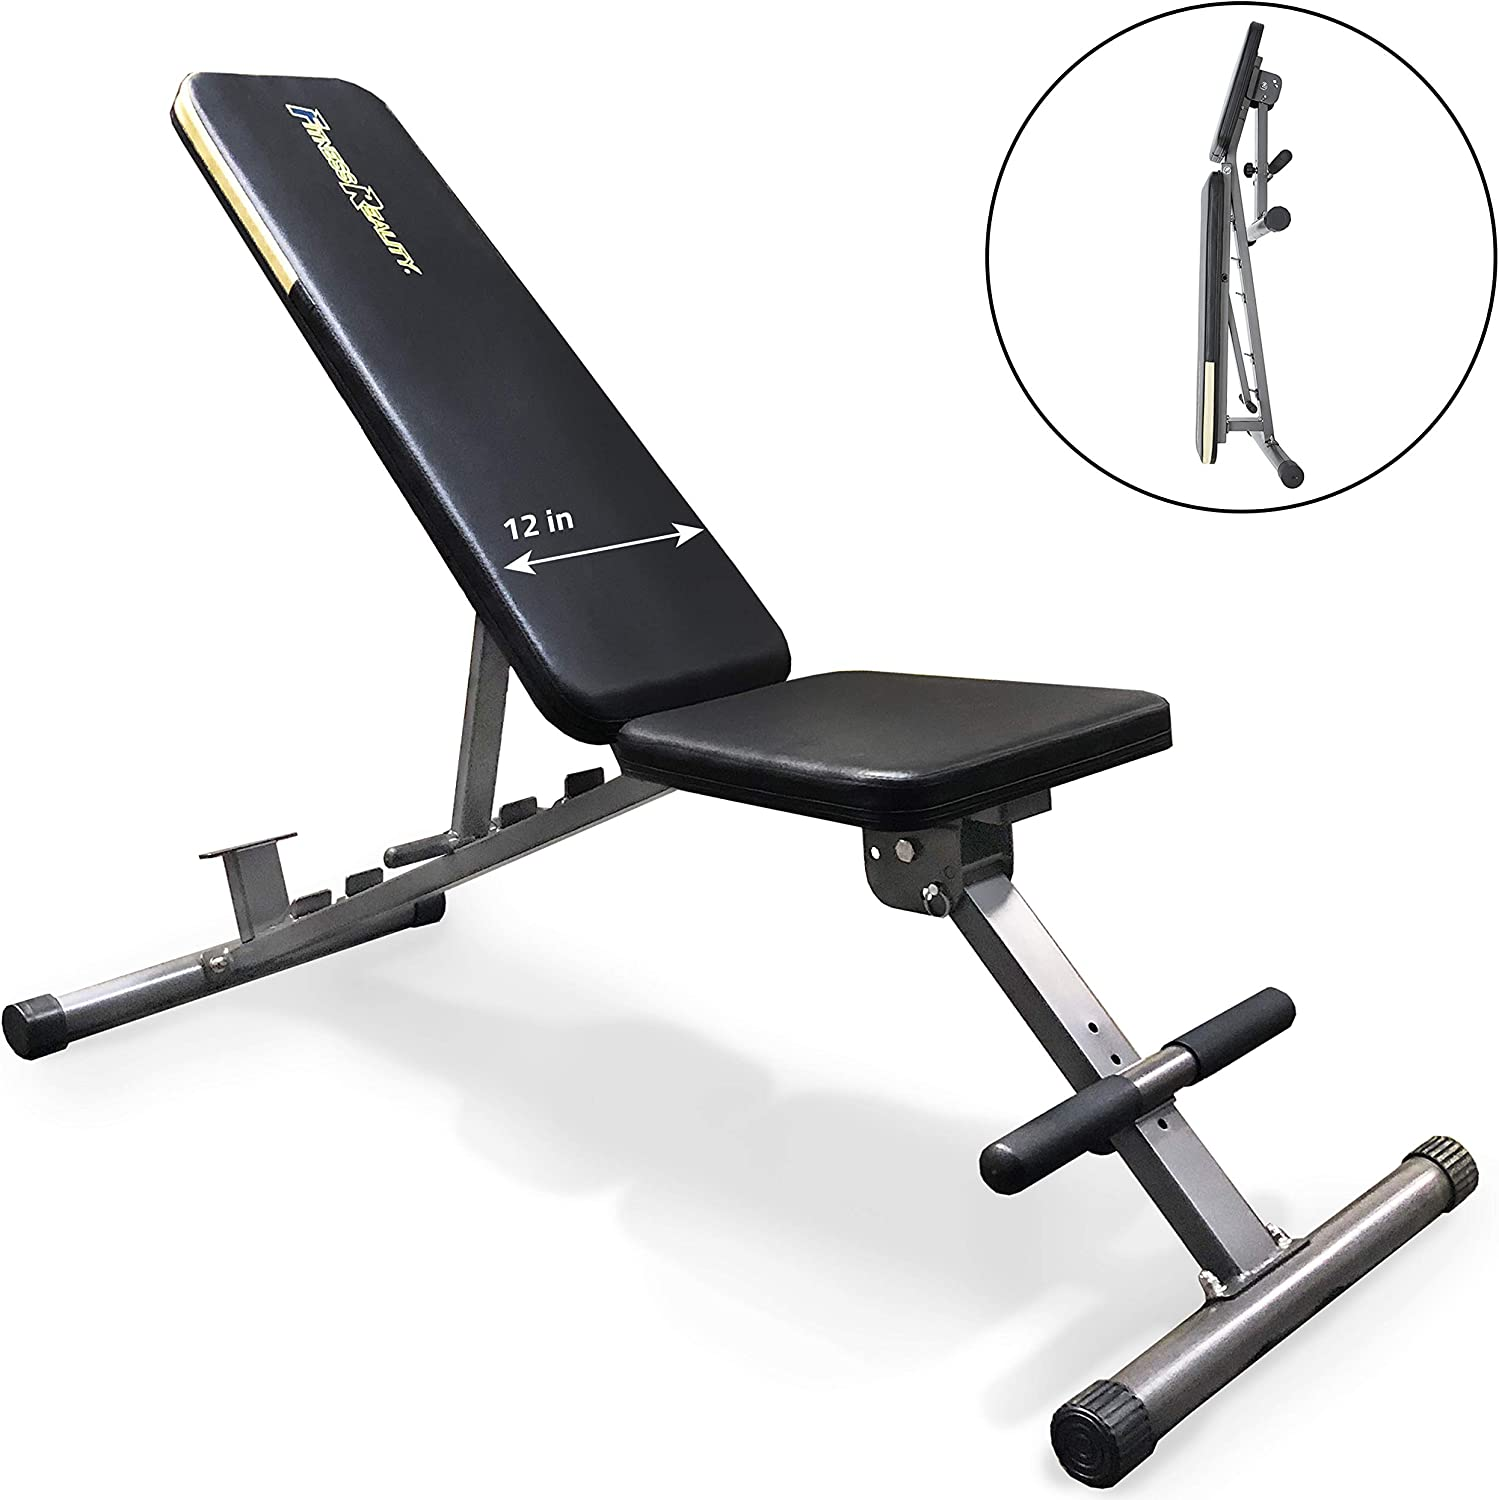 Best portable weight-bench: Fitness Reality 1000 Super Max Weight Bench